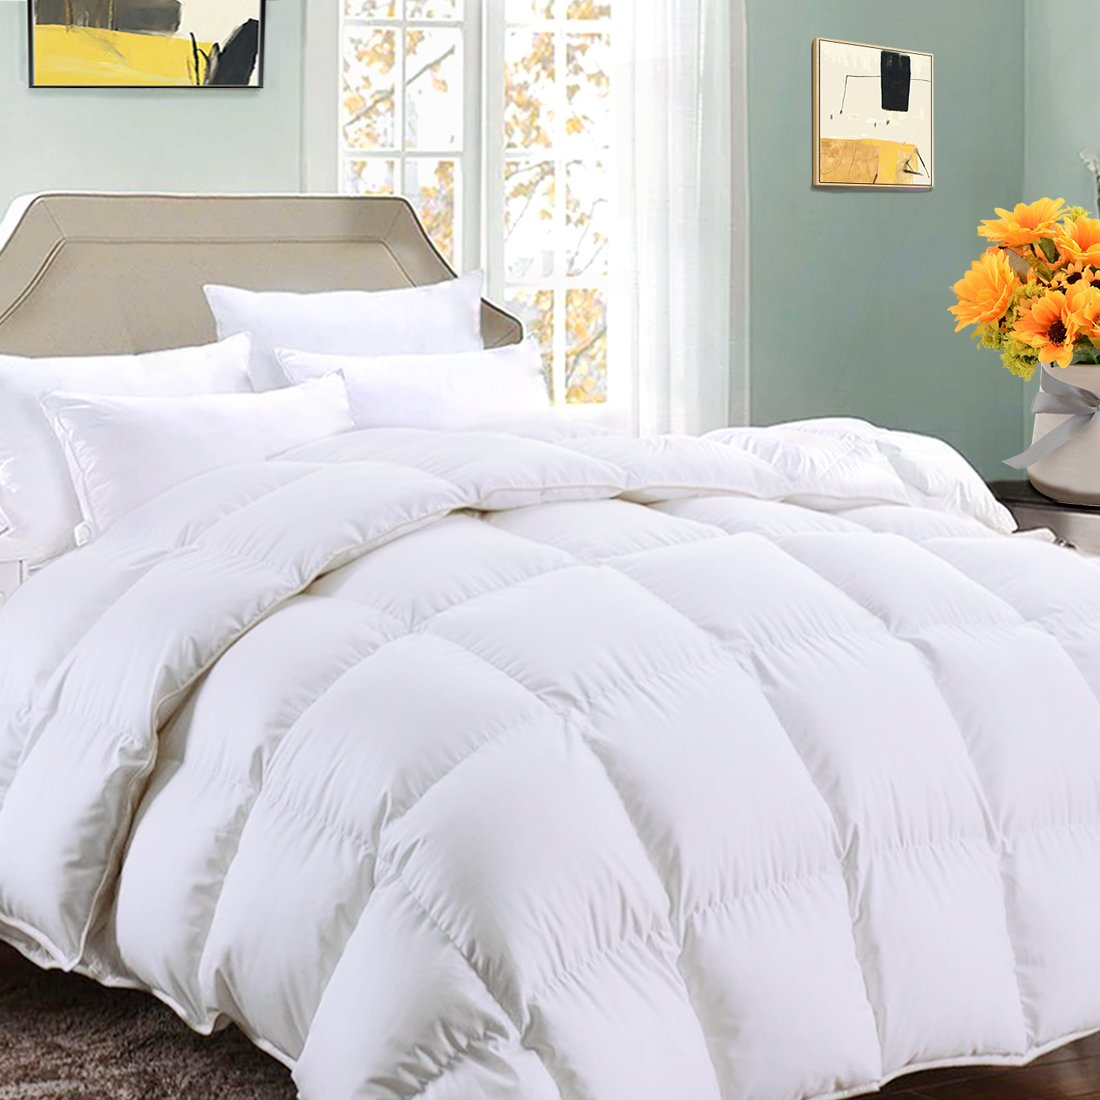 Queen Comforter Soft Summer Cooling Goose Down Alternative Duvet Insert 2100 Hypoallergenic Quilt with Corner Tab for all Season, Prima Microfiber Filled Reversible Hotel Collection,White,88 X 88 inch by SOPAT